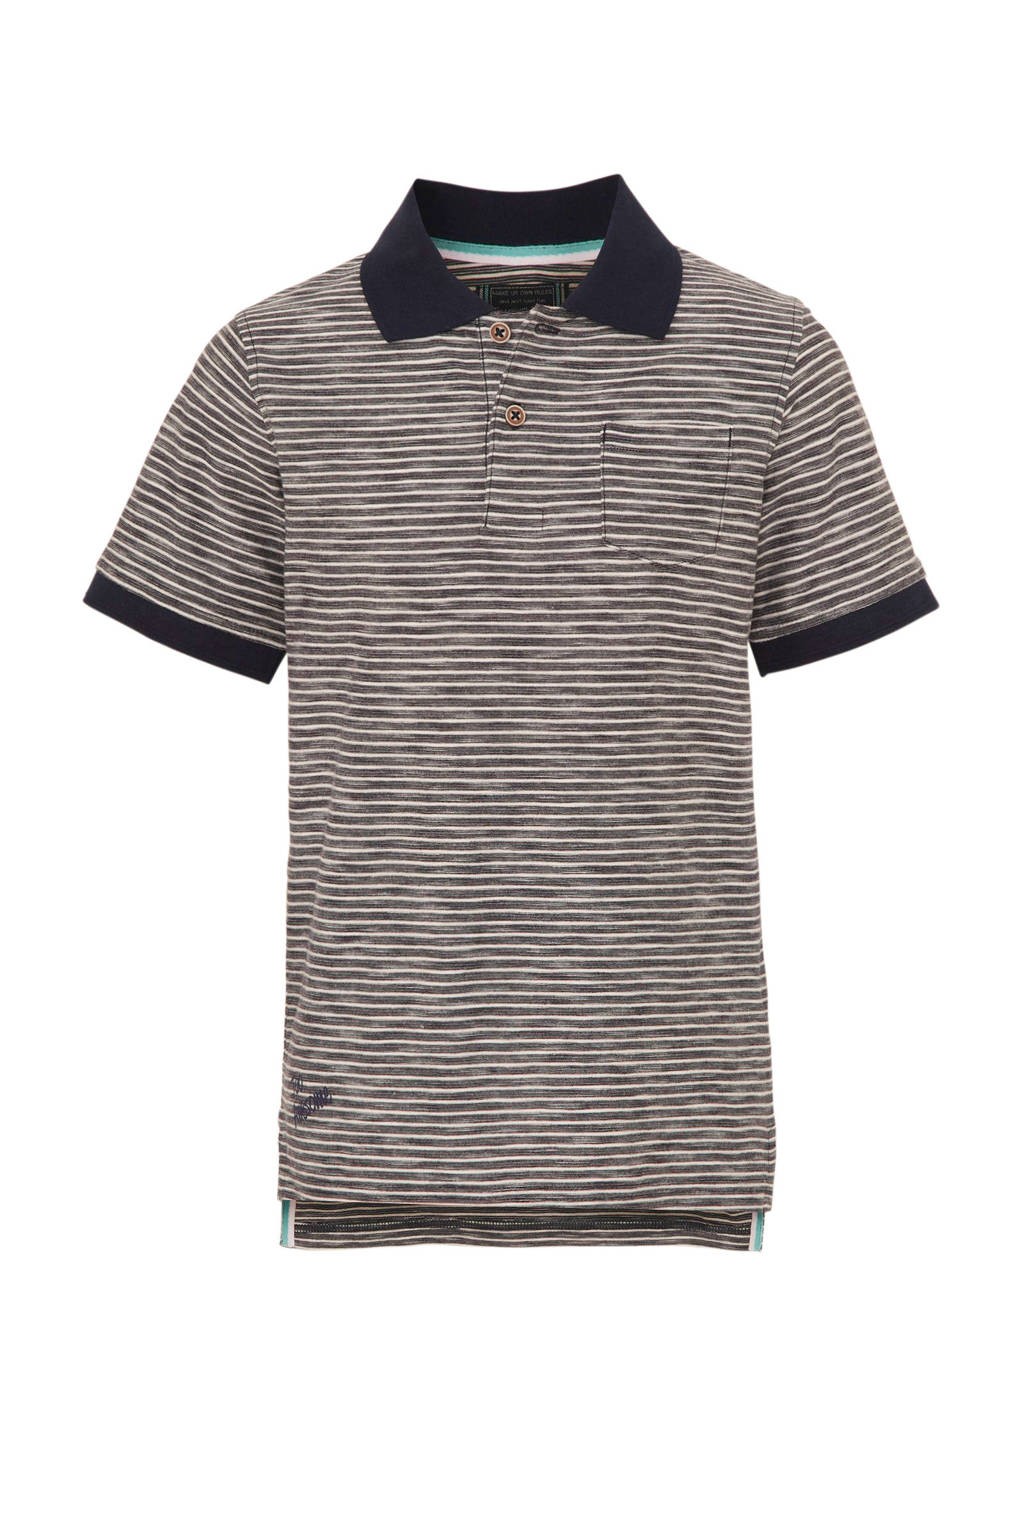 C&A Here & There gestreepte polo donkerblauw/wit, Donkerblauw/wit